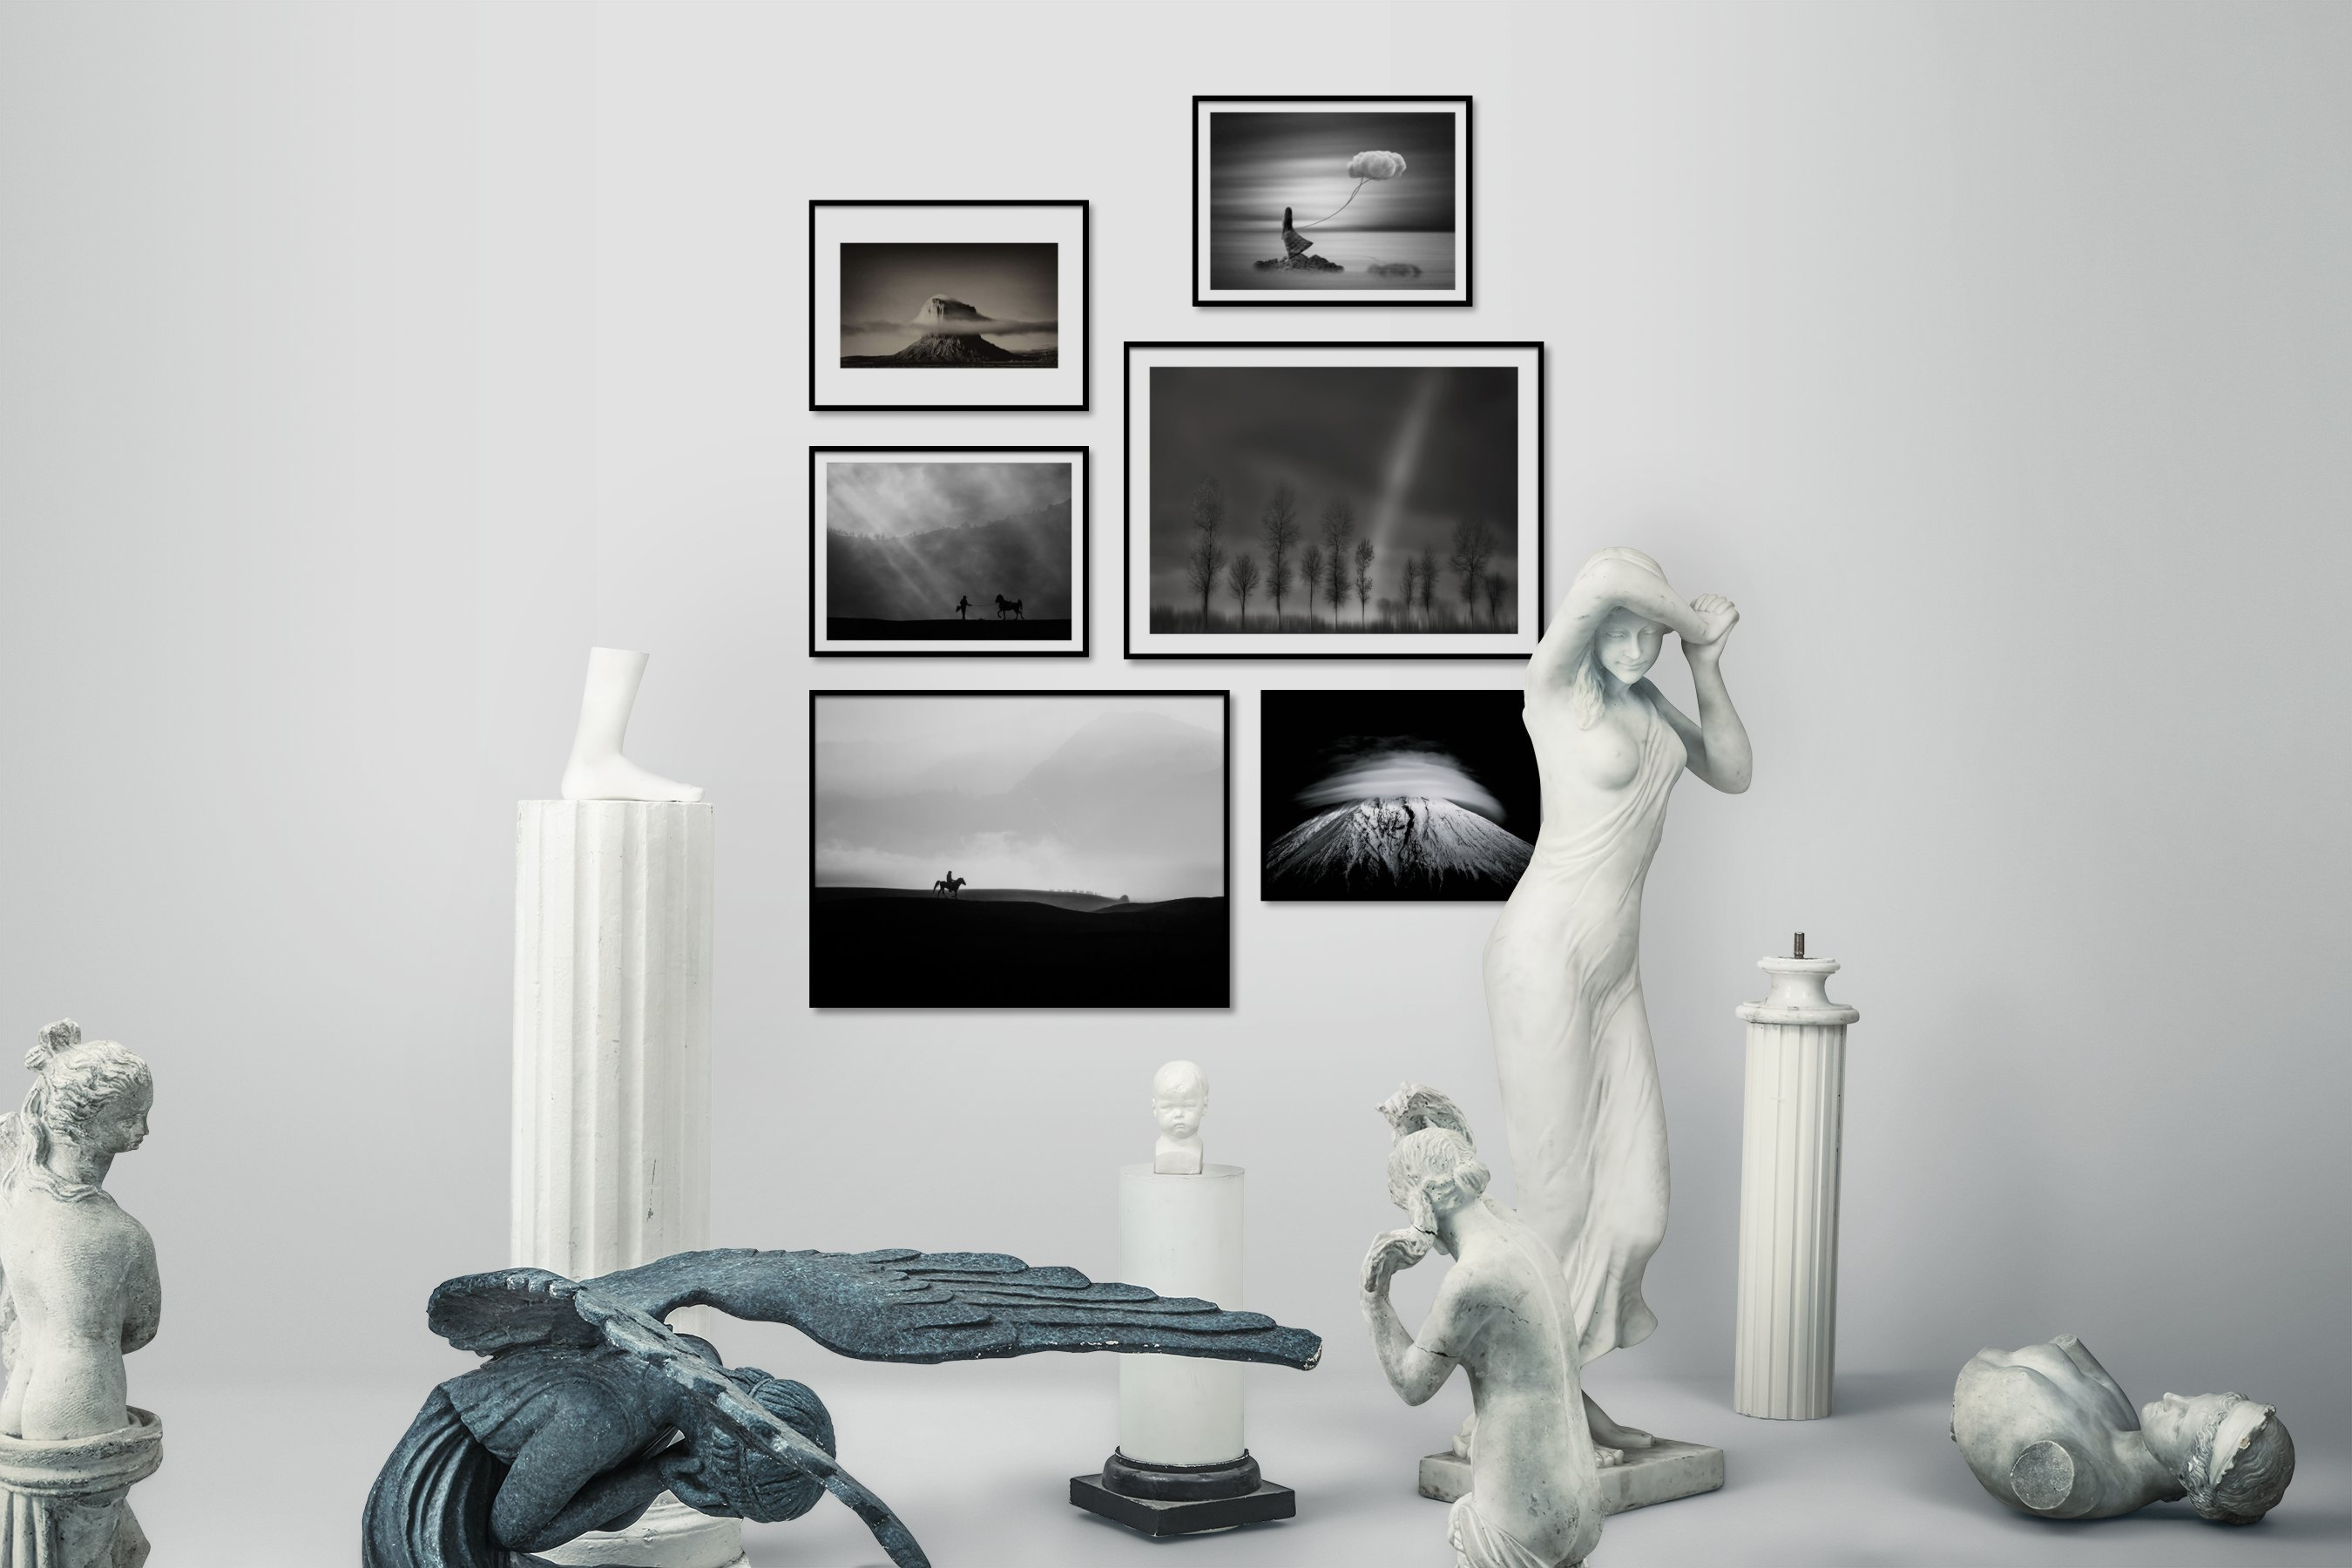 Gallery wall idea with six framed pictures arranged on a wall depicting Black & White, For the Minimalist, Nature, Mindfulness, Artsy, Animals, Country Life, and Dark Tones